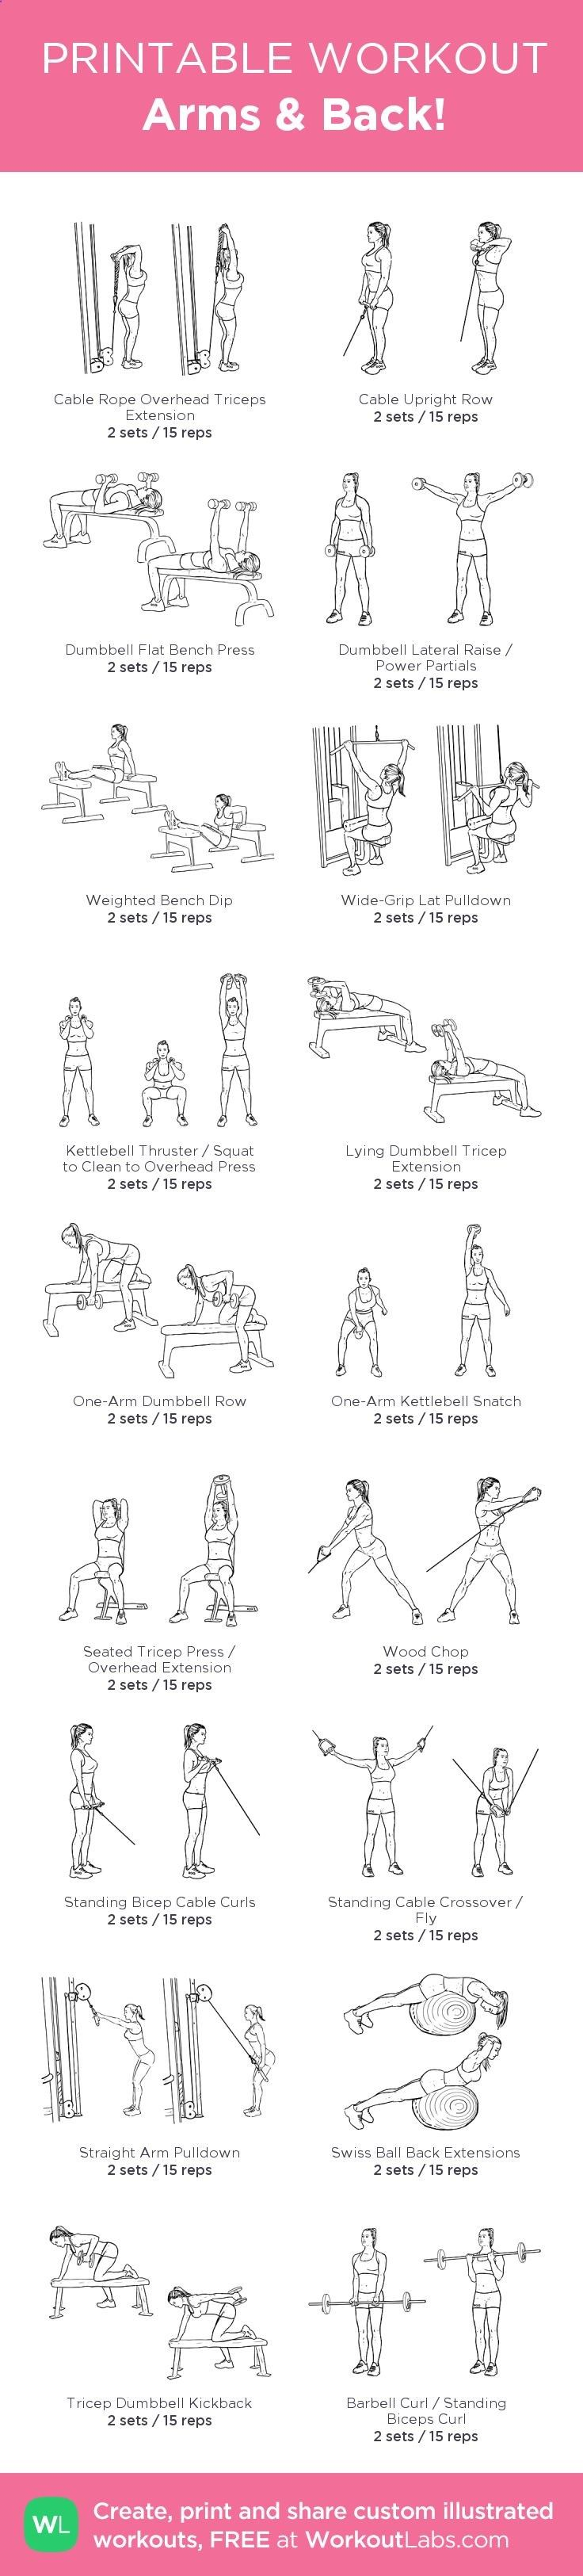 Whether itus sixpack abs gain muscle or weight loss these workout